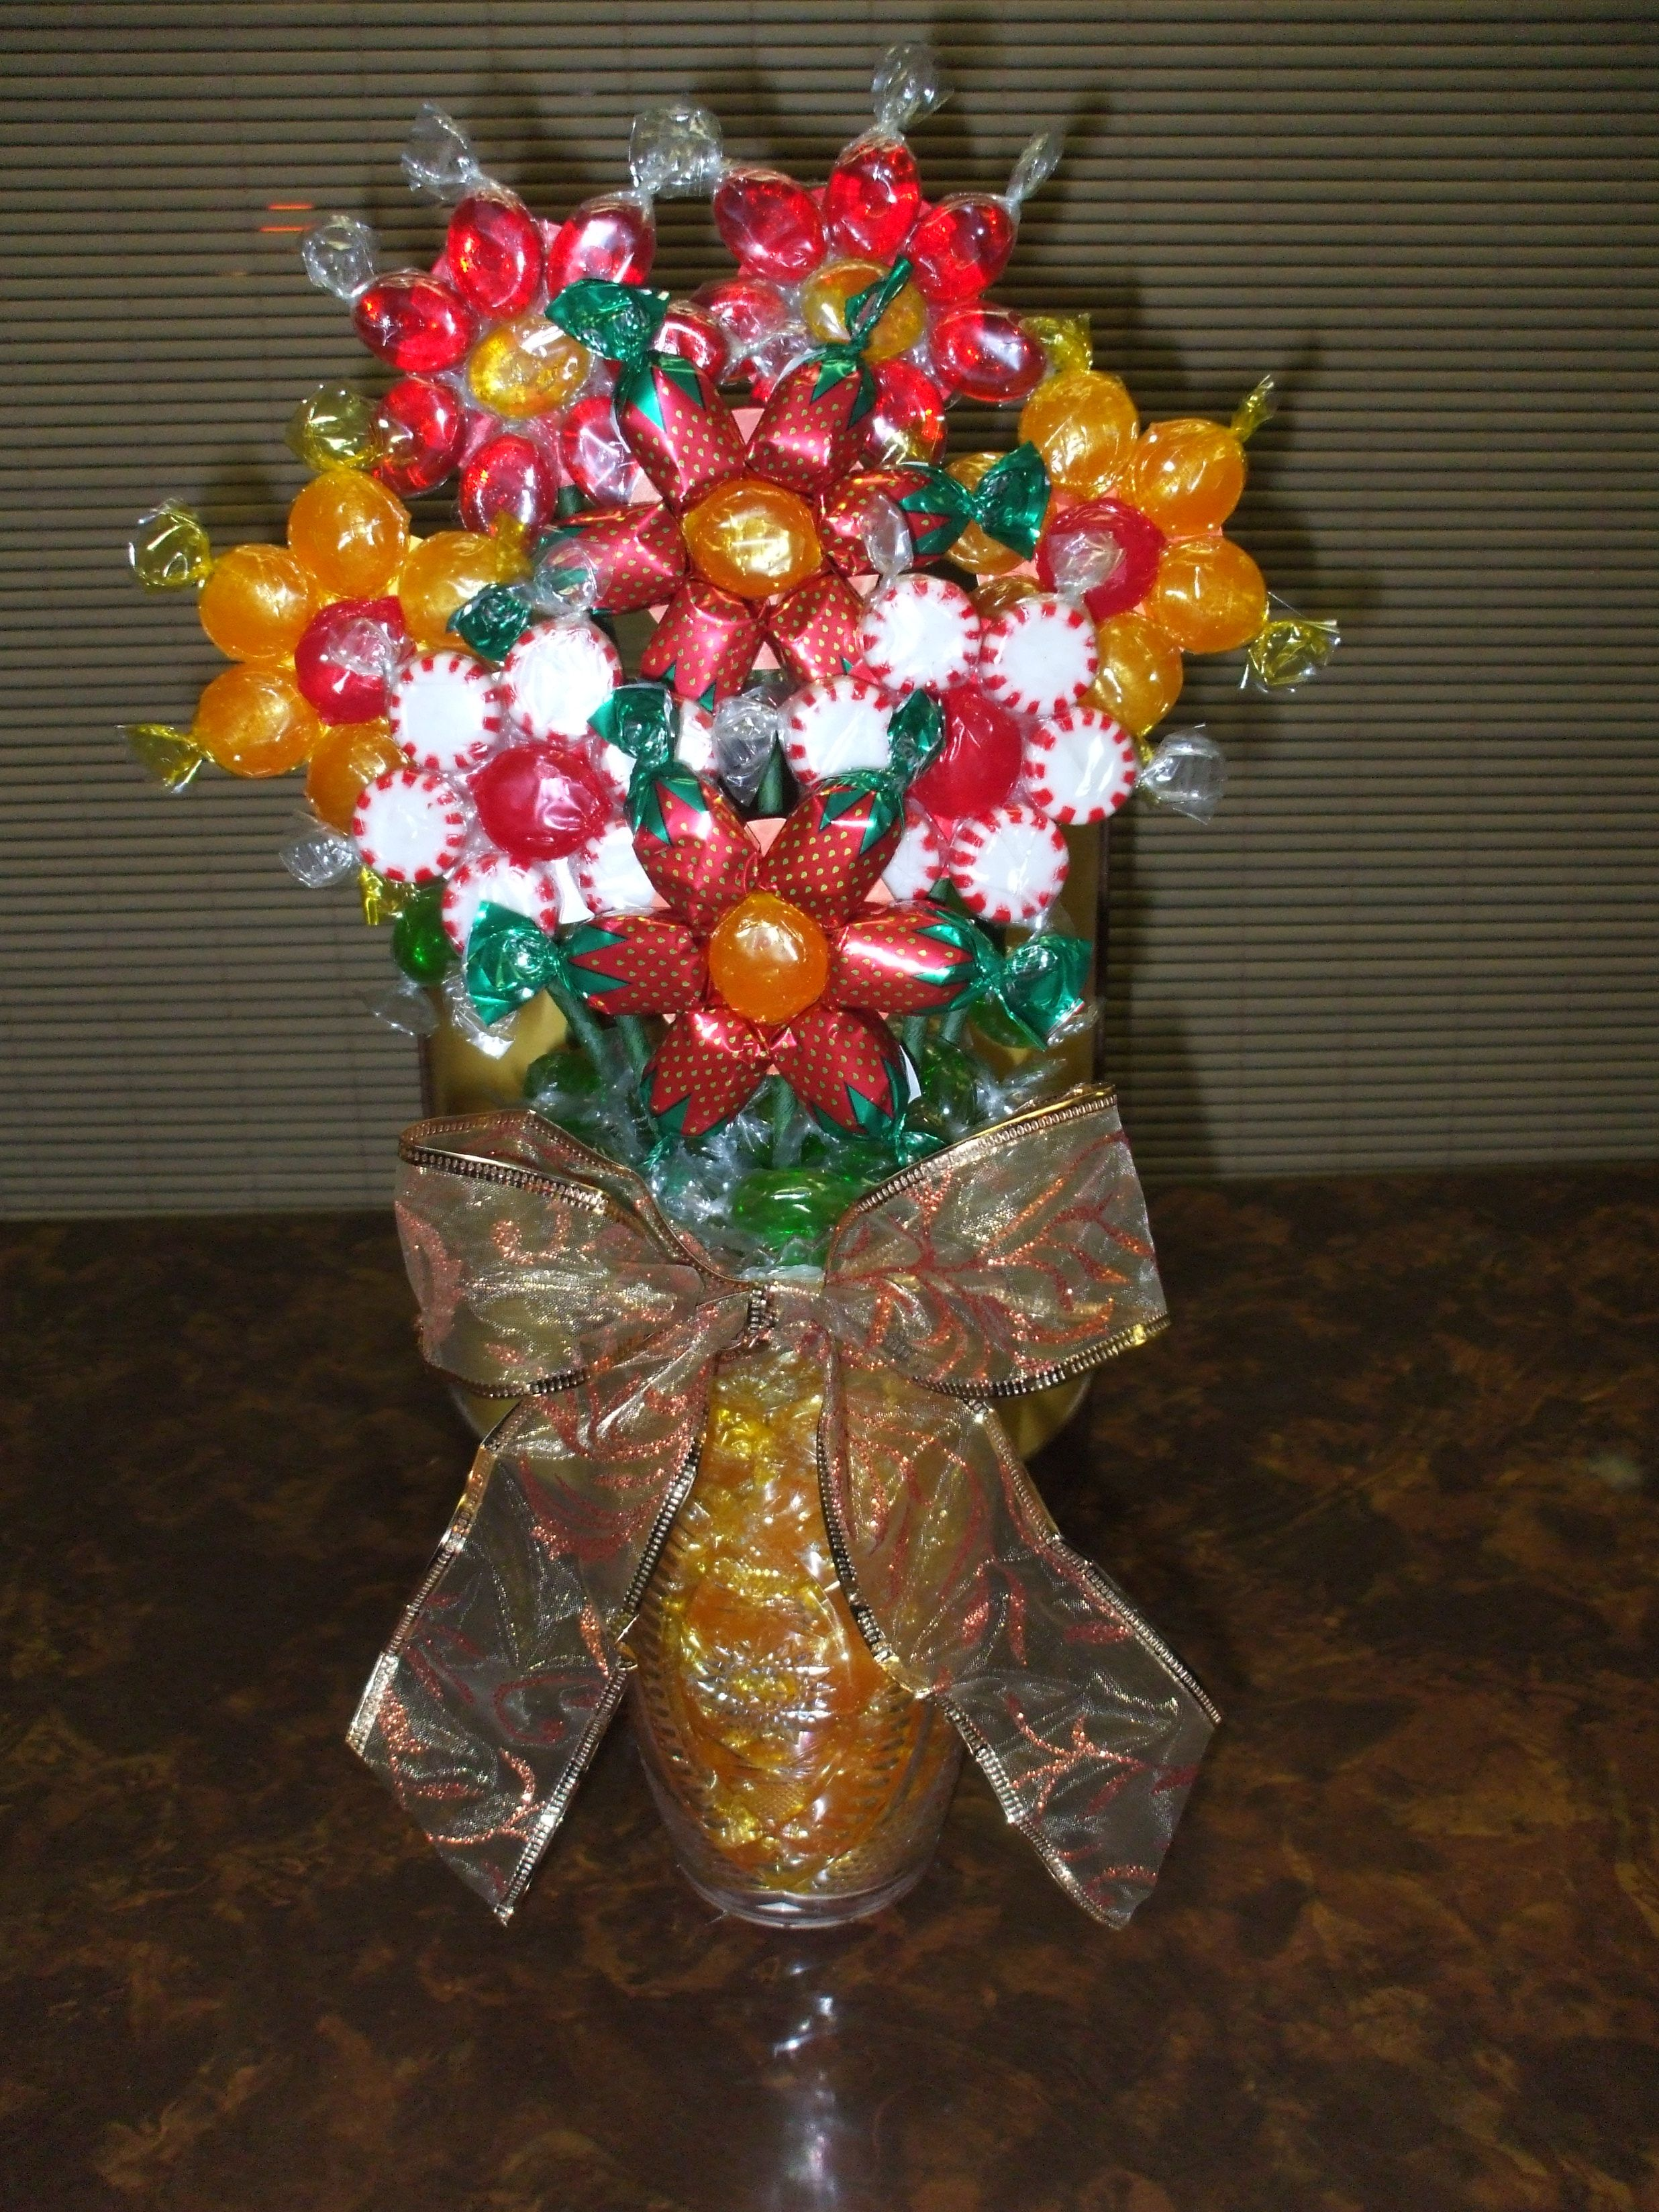 Candy flower bouquet i made.... Lisa | things i made! | Pinterest ...